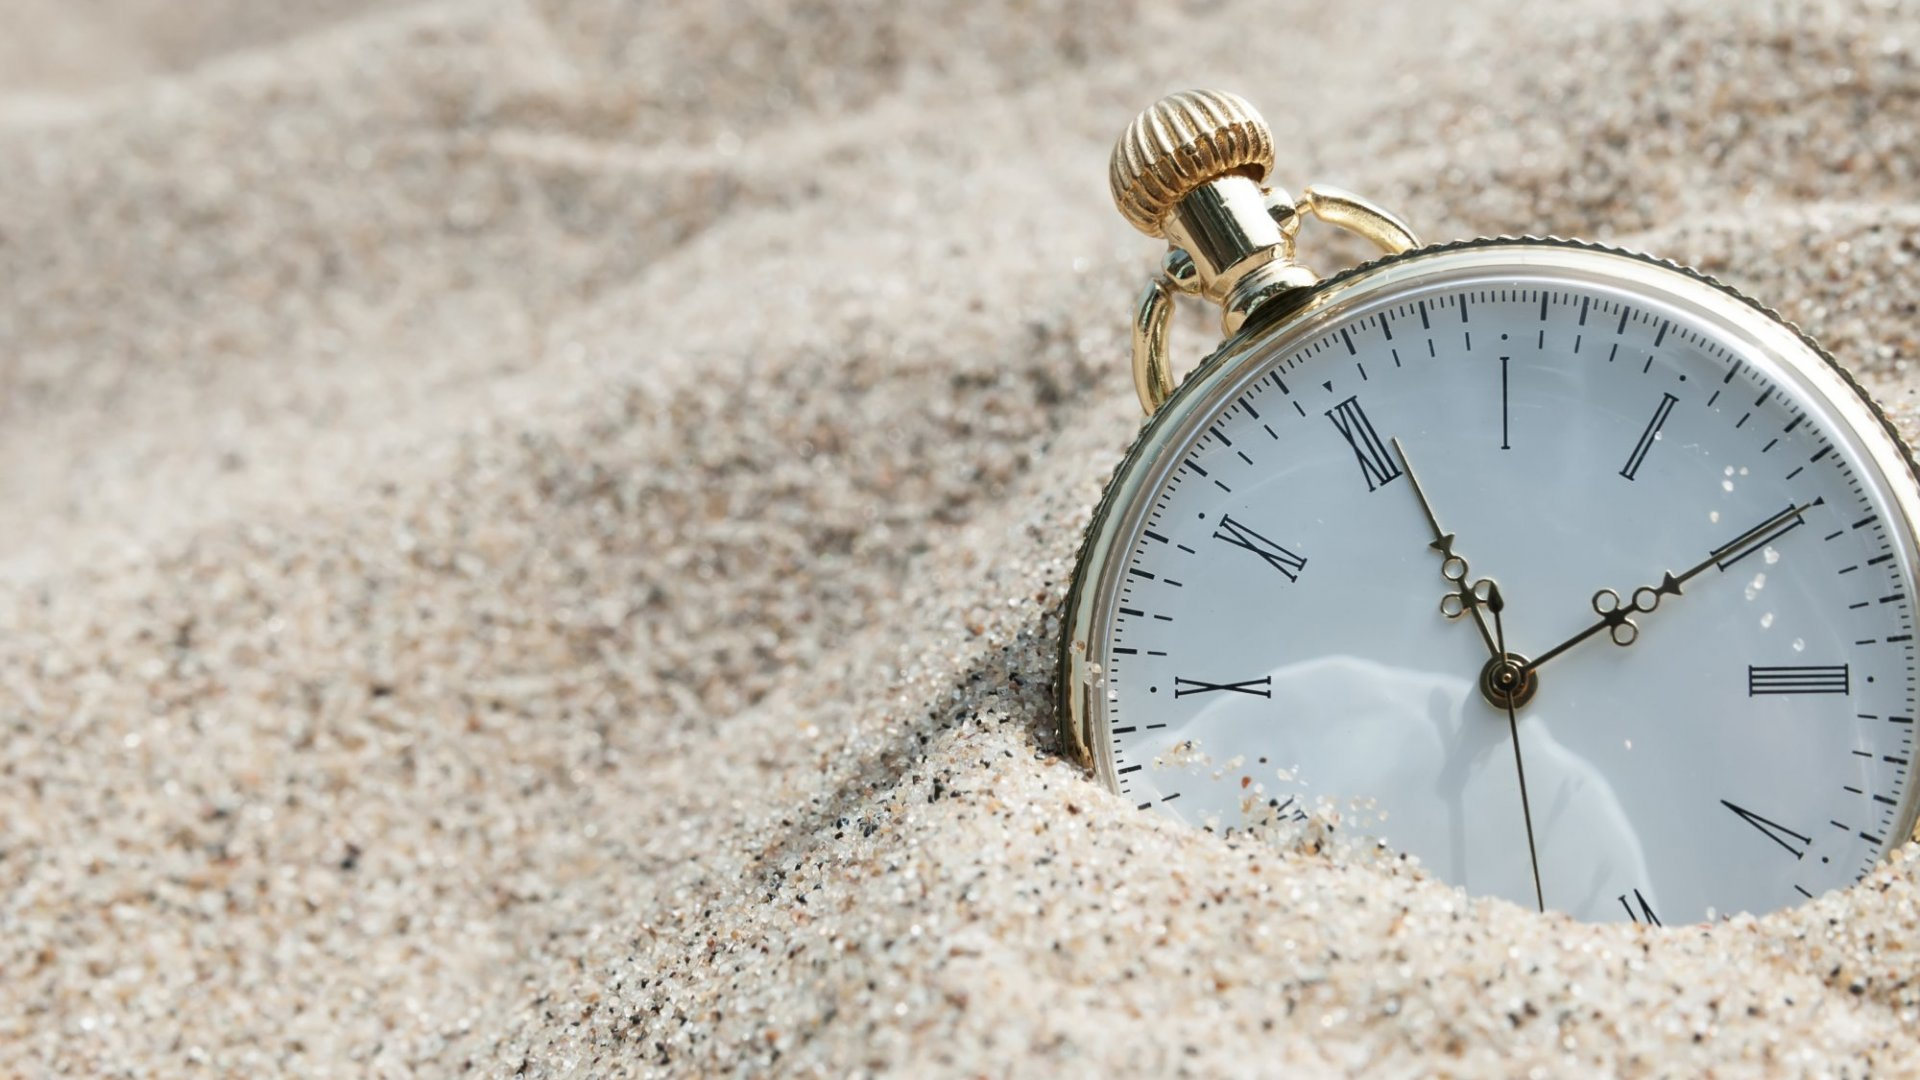 3 Timeless Traits Leaders Must Have